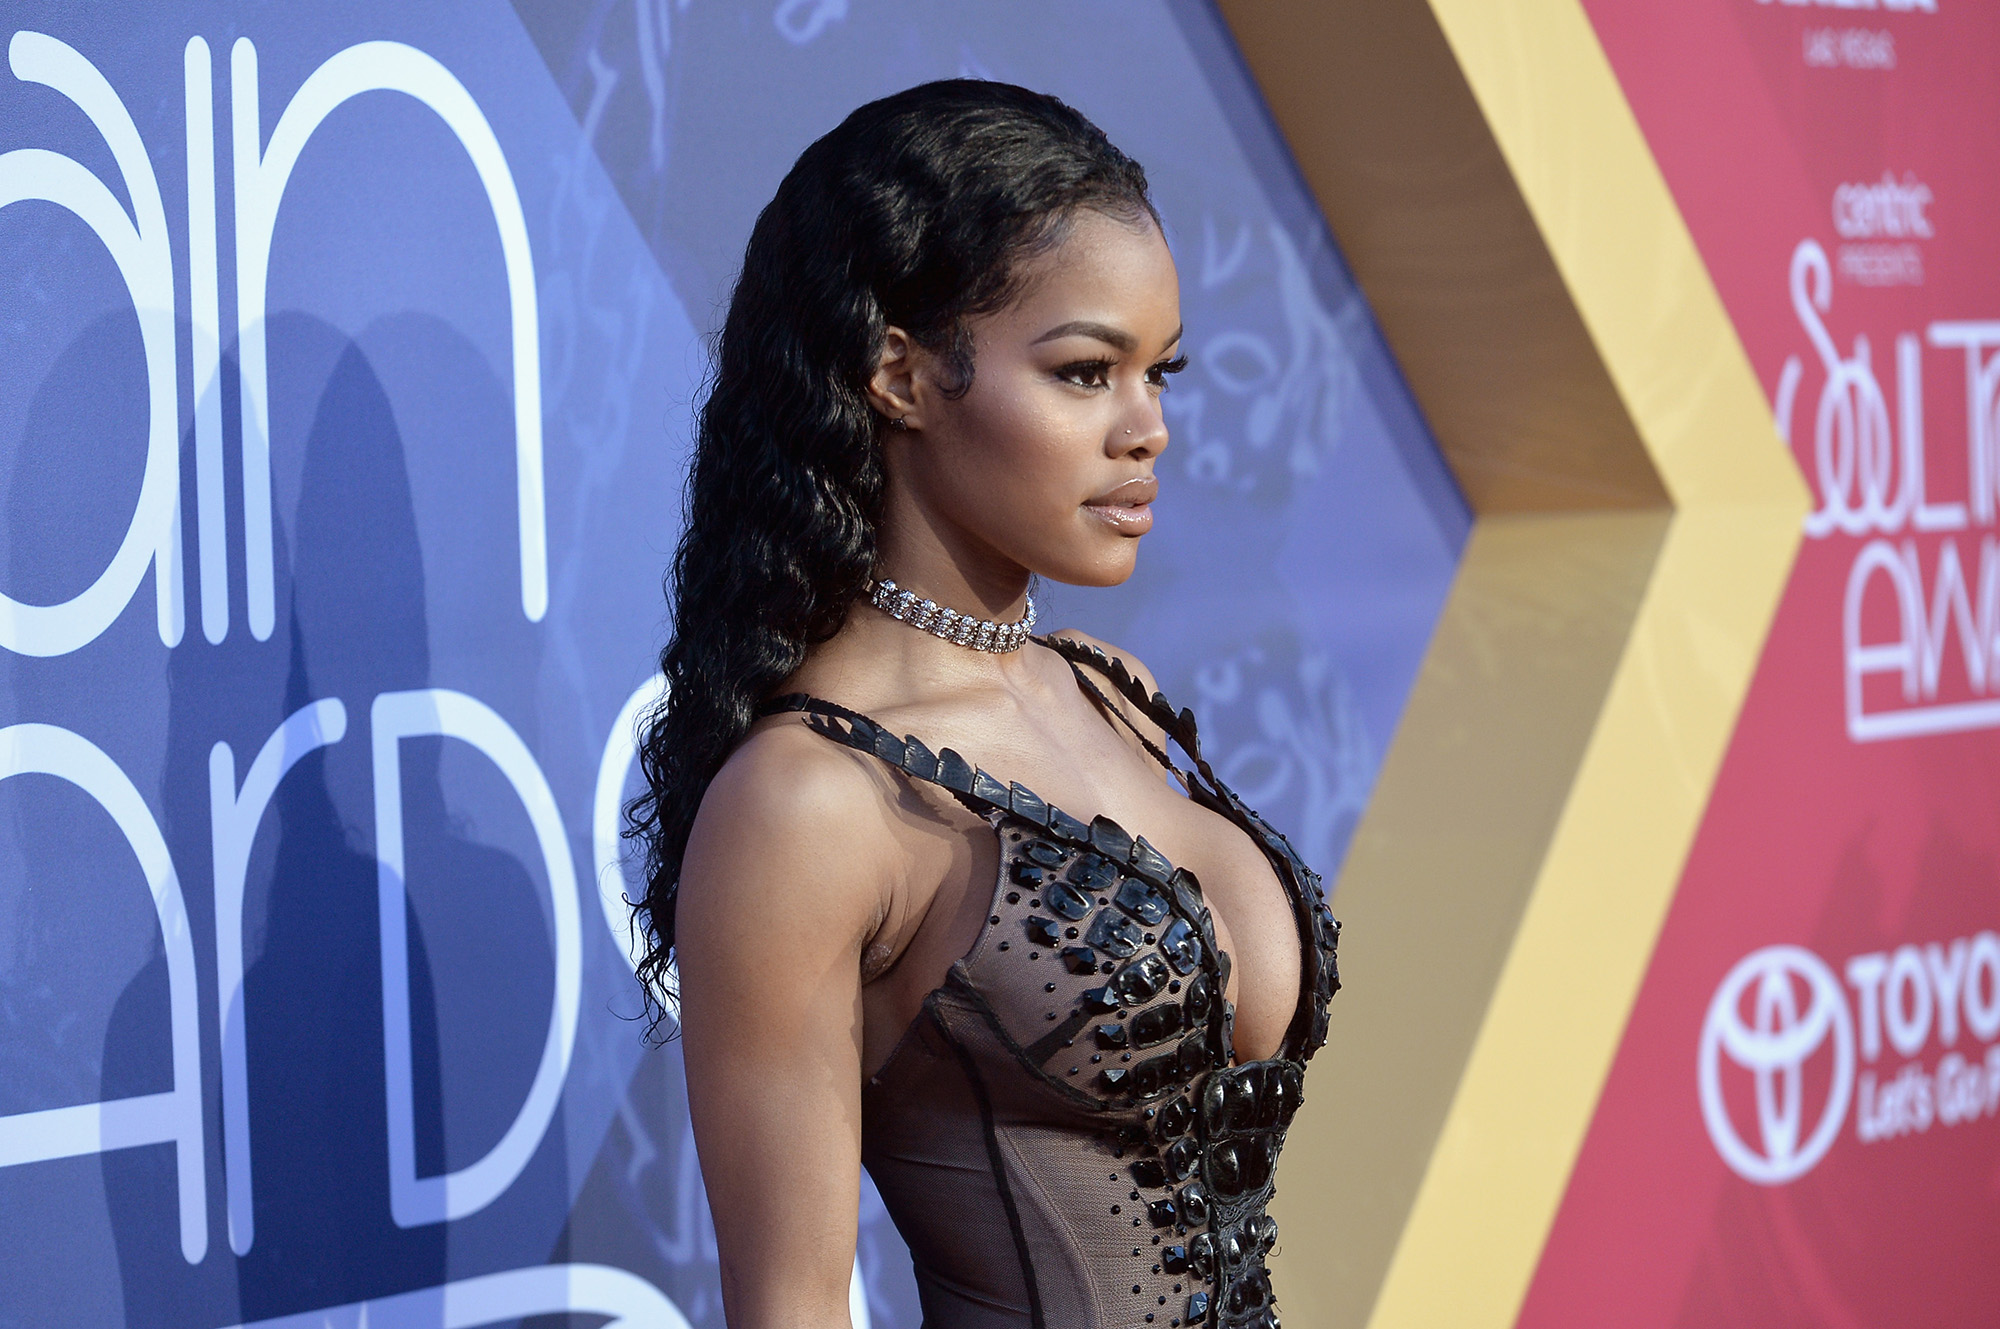 Teyana Taylor's Baby Girl Is Already Two Months Old - Check Out The Sweet Message Her Mom Posted